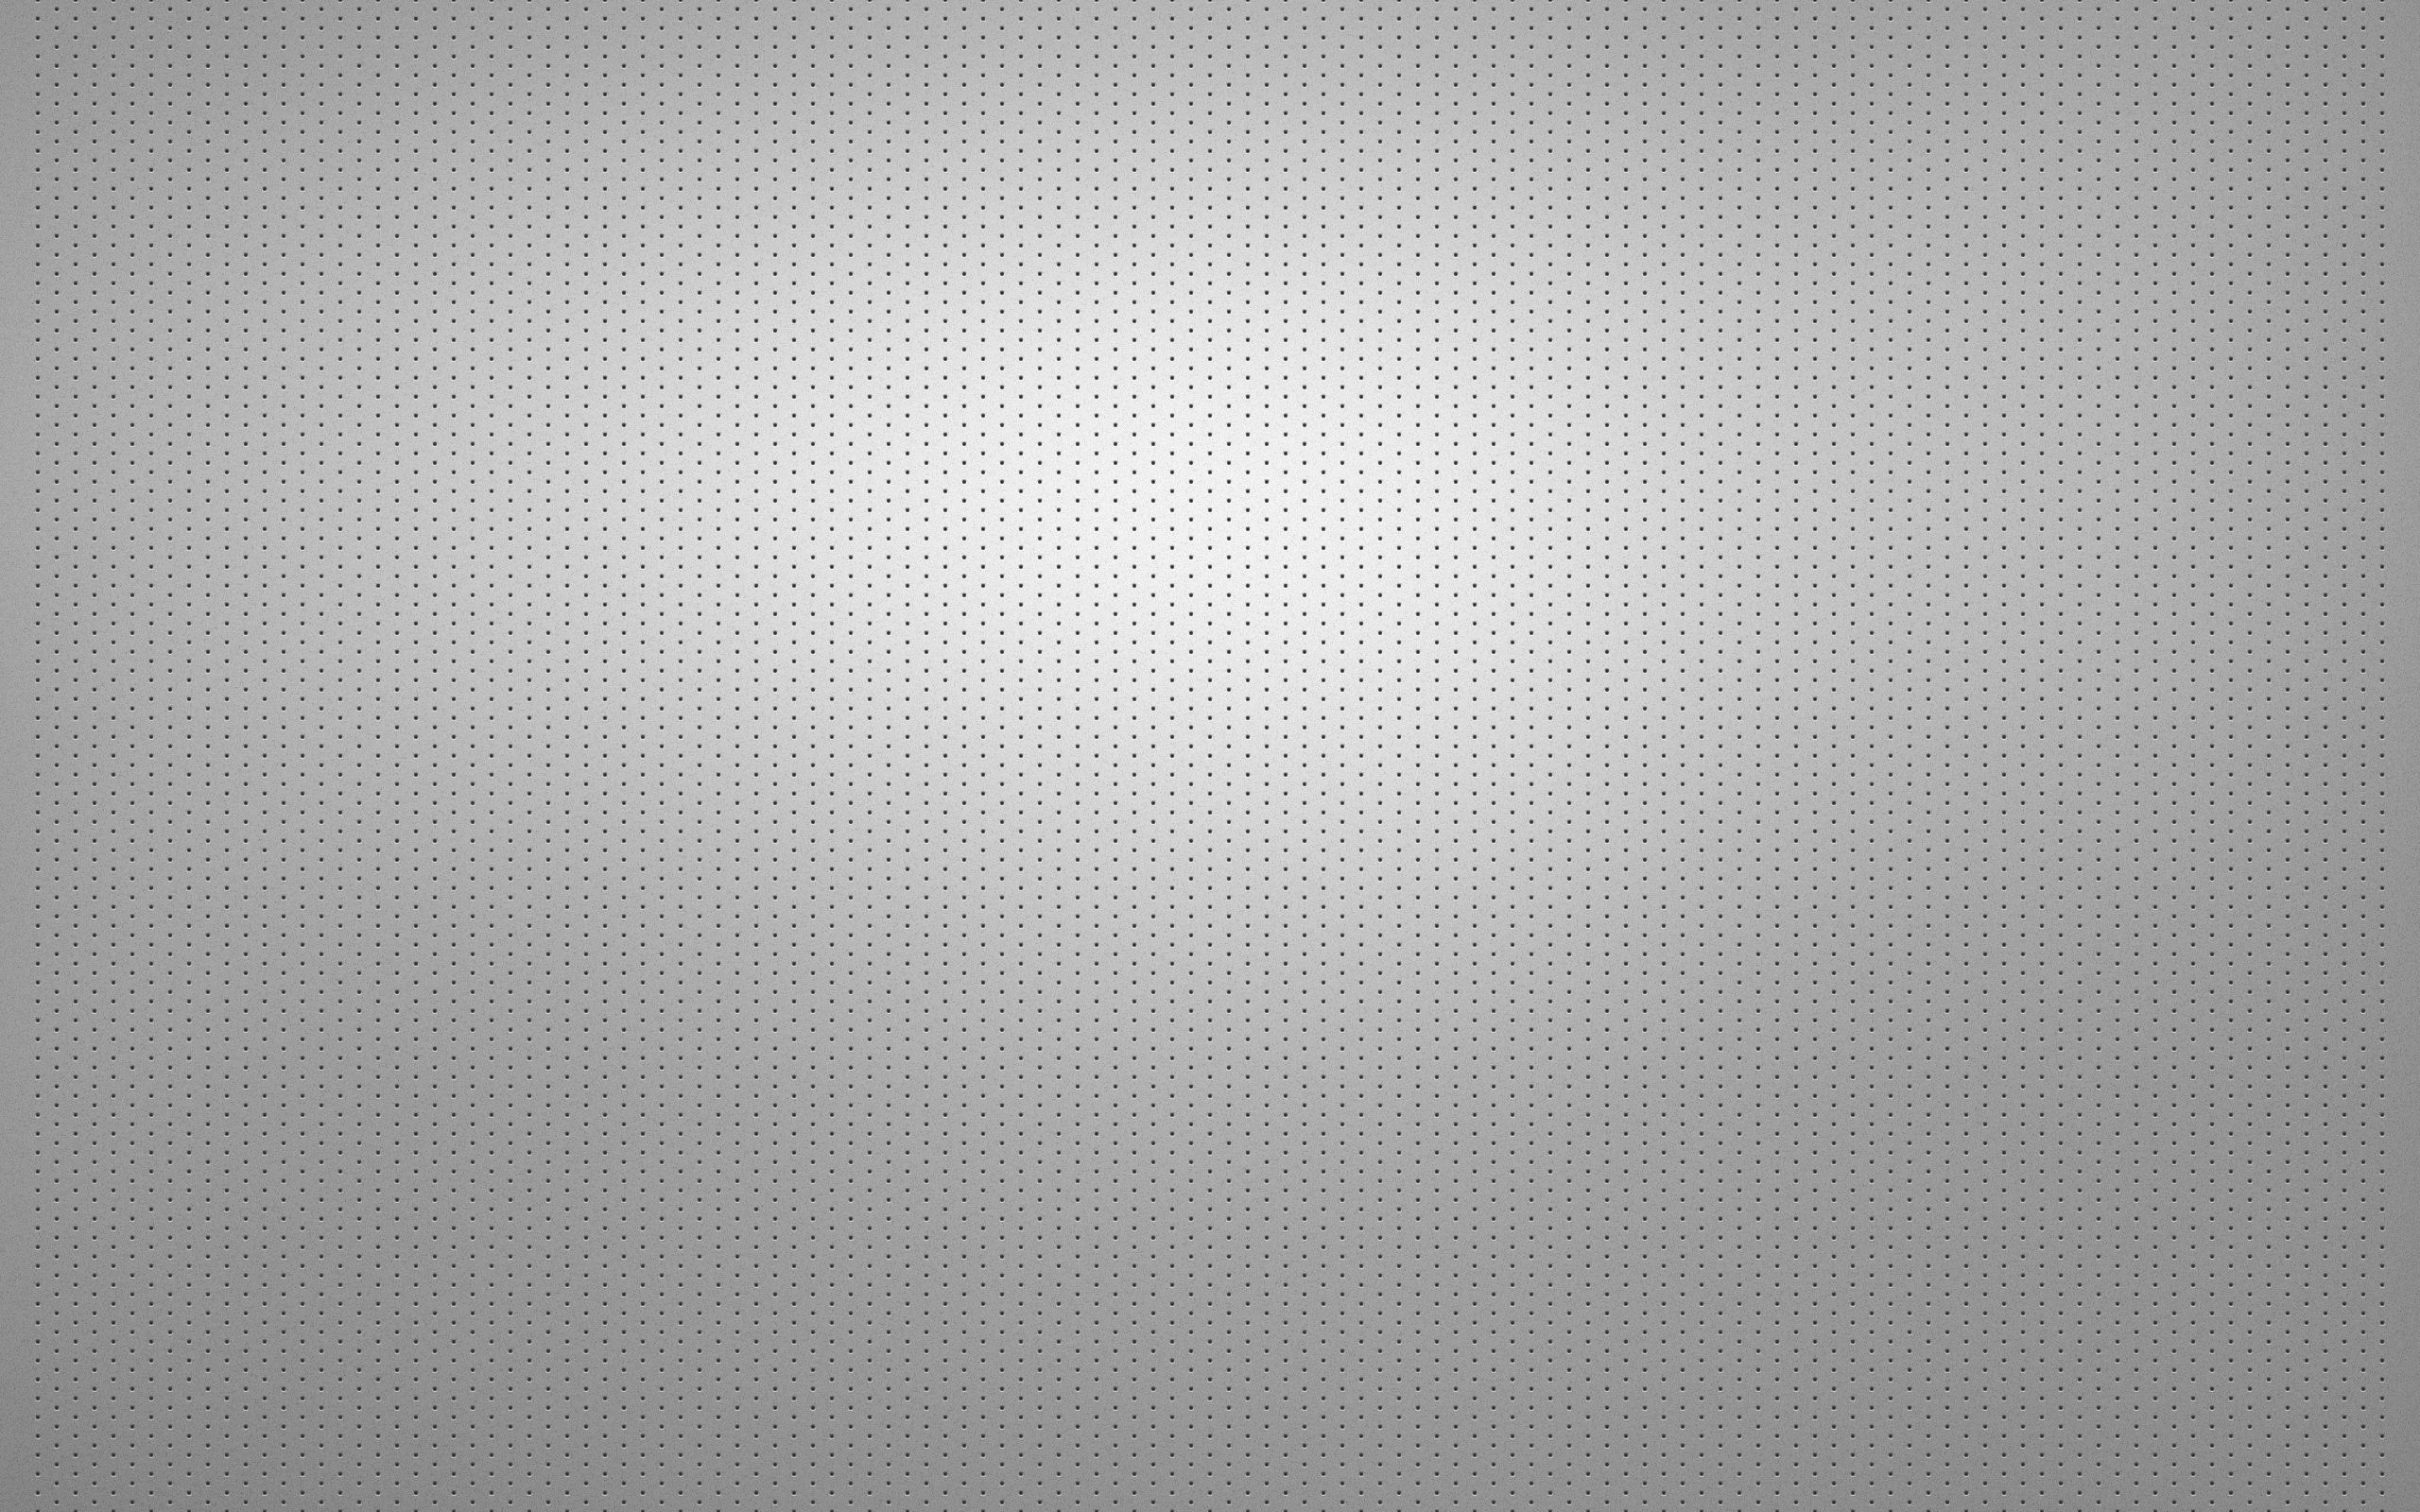 120544 download wallpaper Grid, Point, Background, Texture, Textures, Points, Silver screensavers and pictures for free